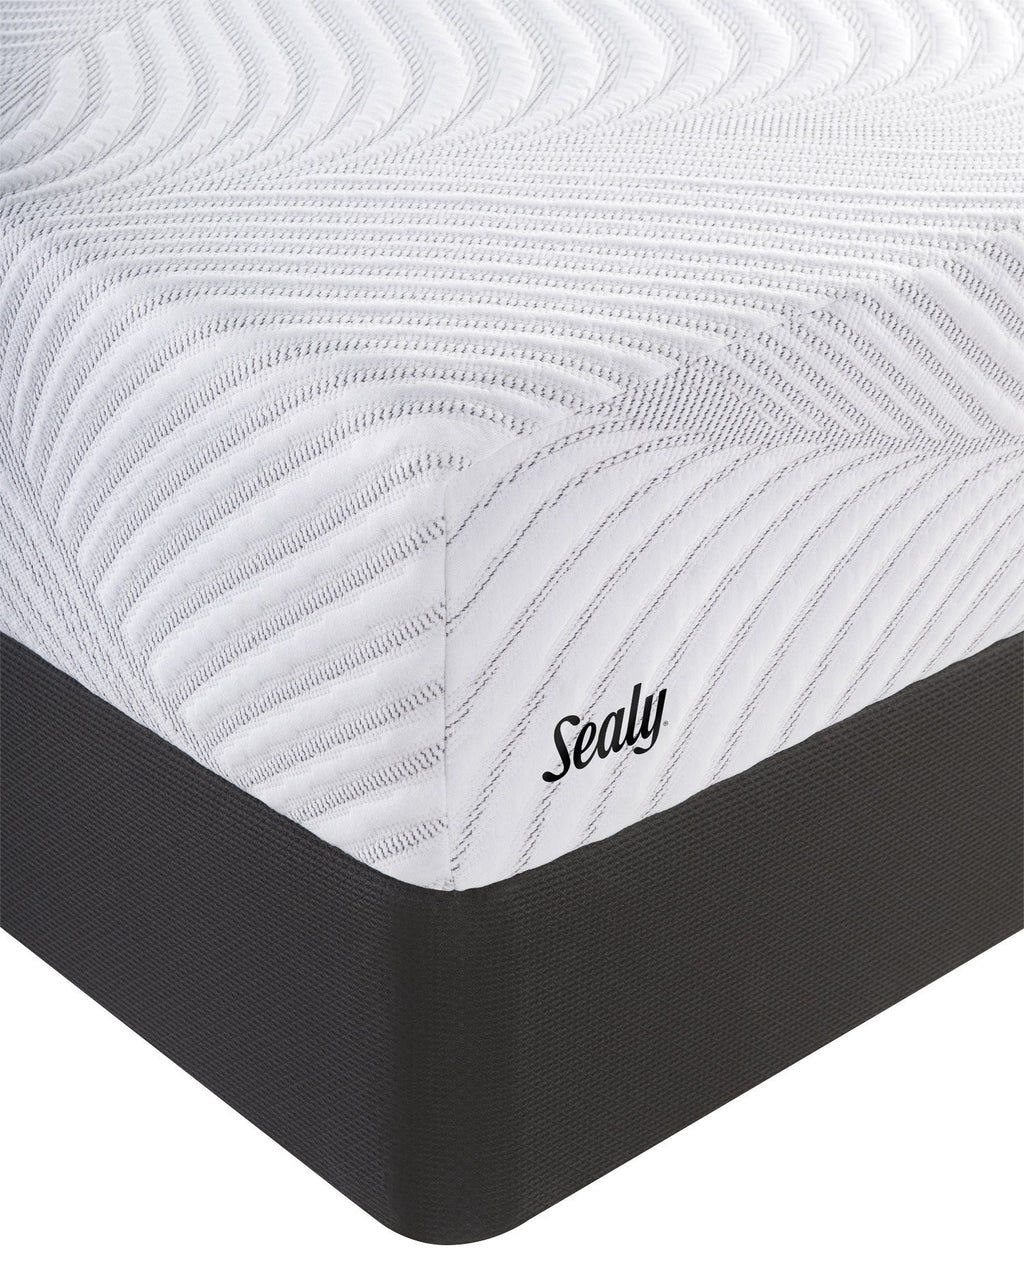 Sealy Gel Memory Foam Twin Mattress - Save on Mattresses Outlet